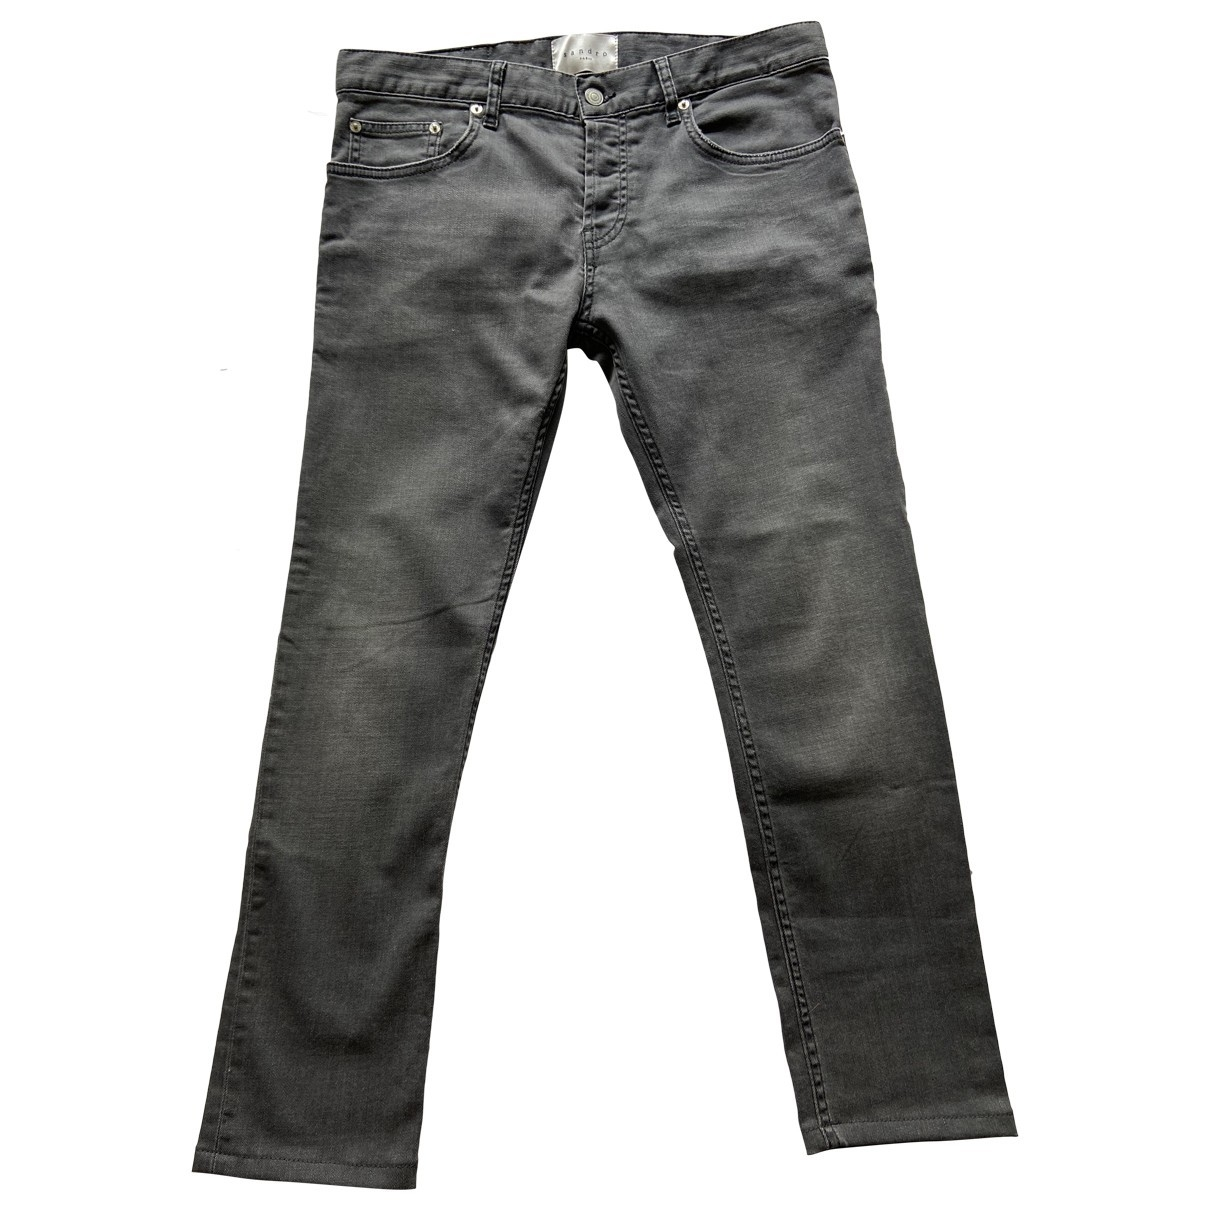 Sandro Fall Winter 2019 Grey Cotton - elasthane Jeans for Men 32 US